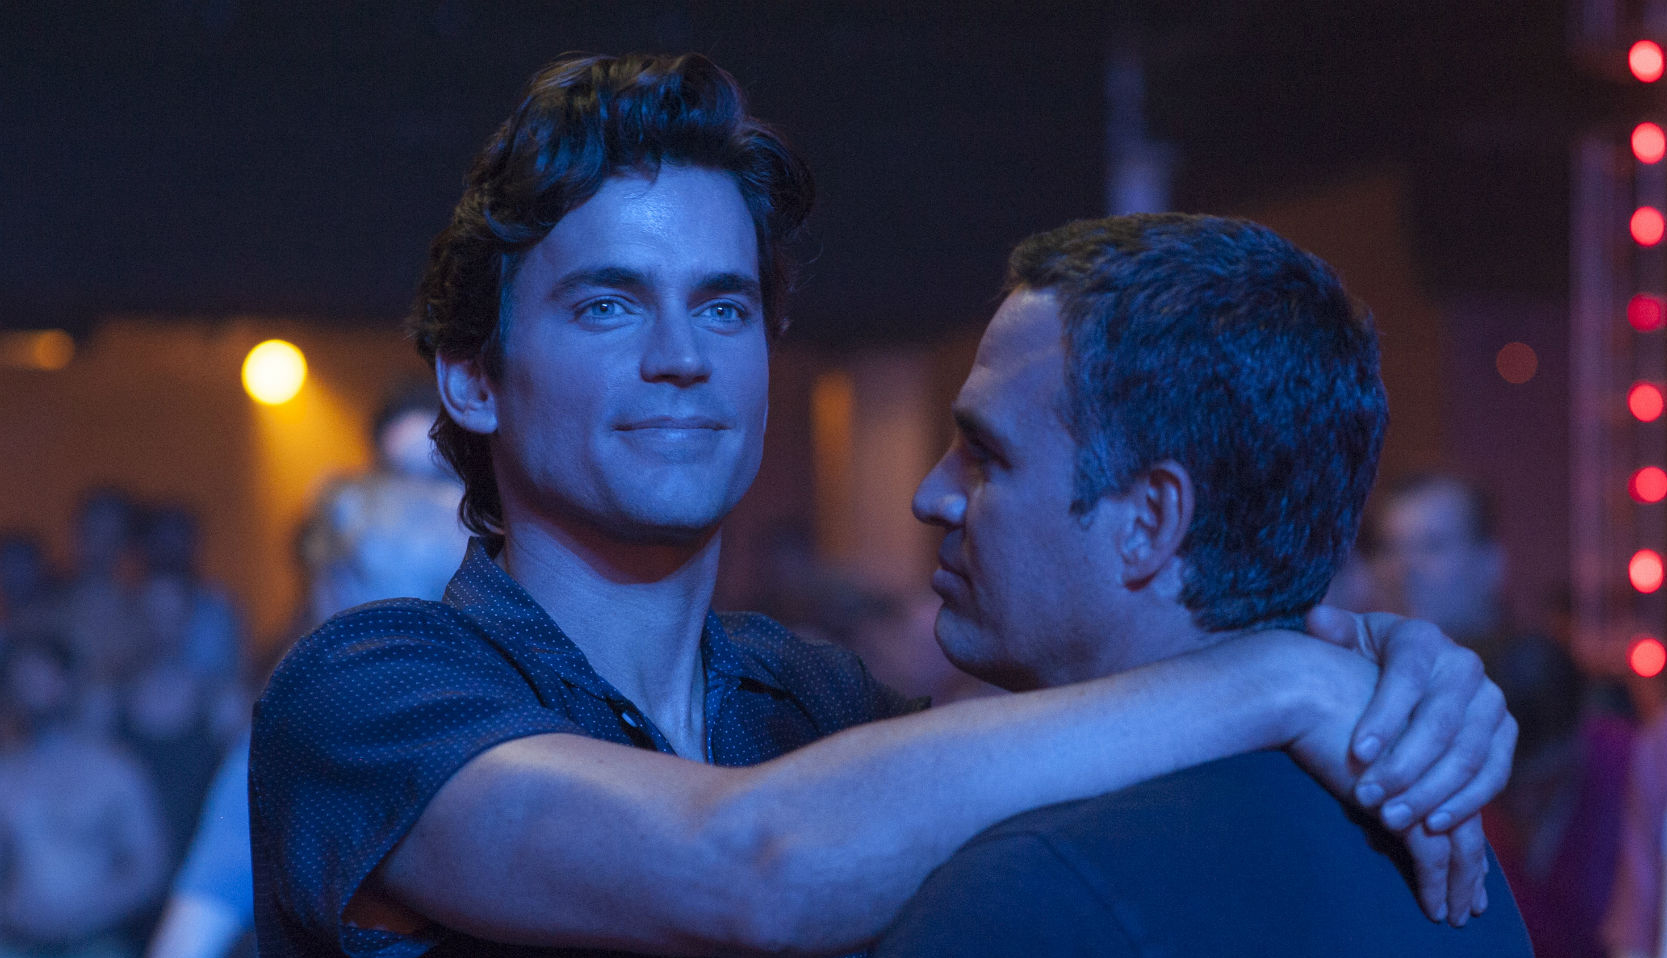 Matt Bomer Tells the Personal Story Behind His Heartbreaking 'Normal Heart' Performance